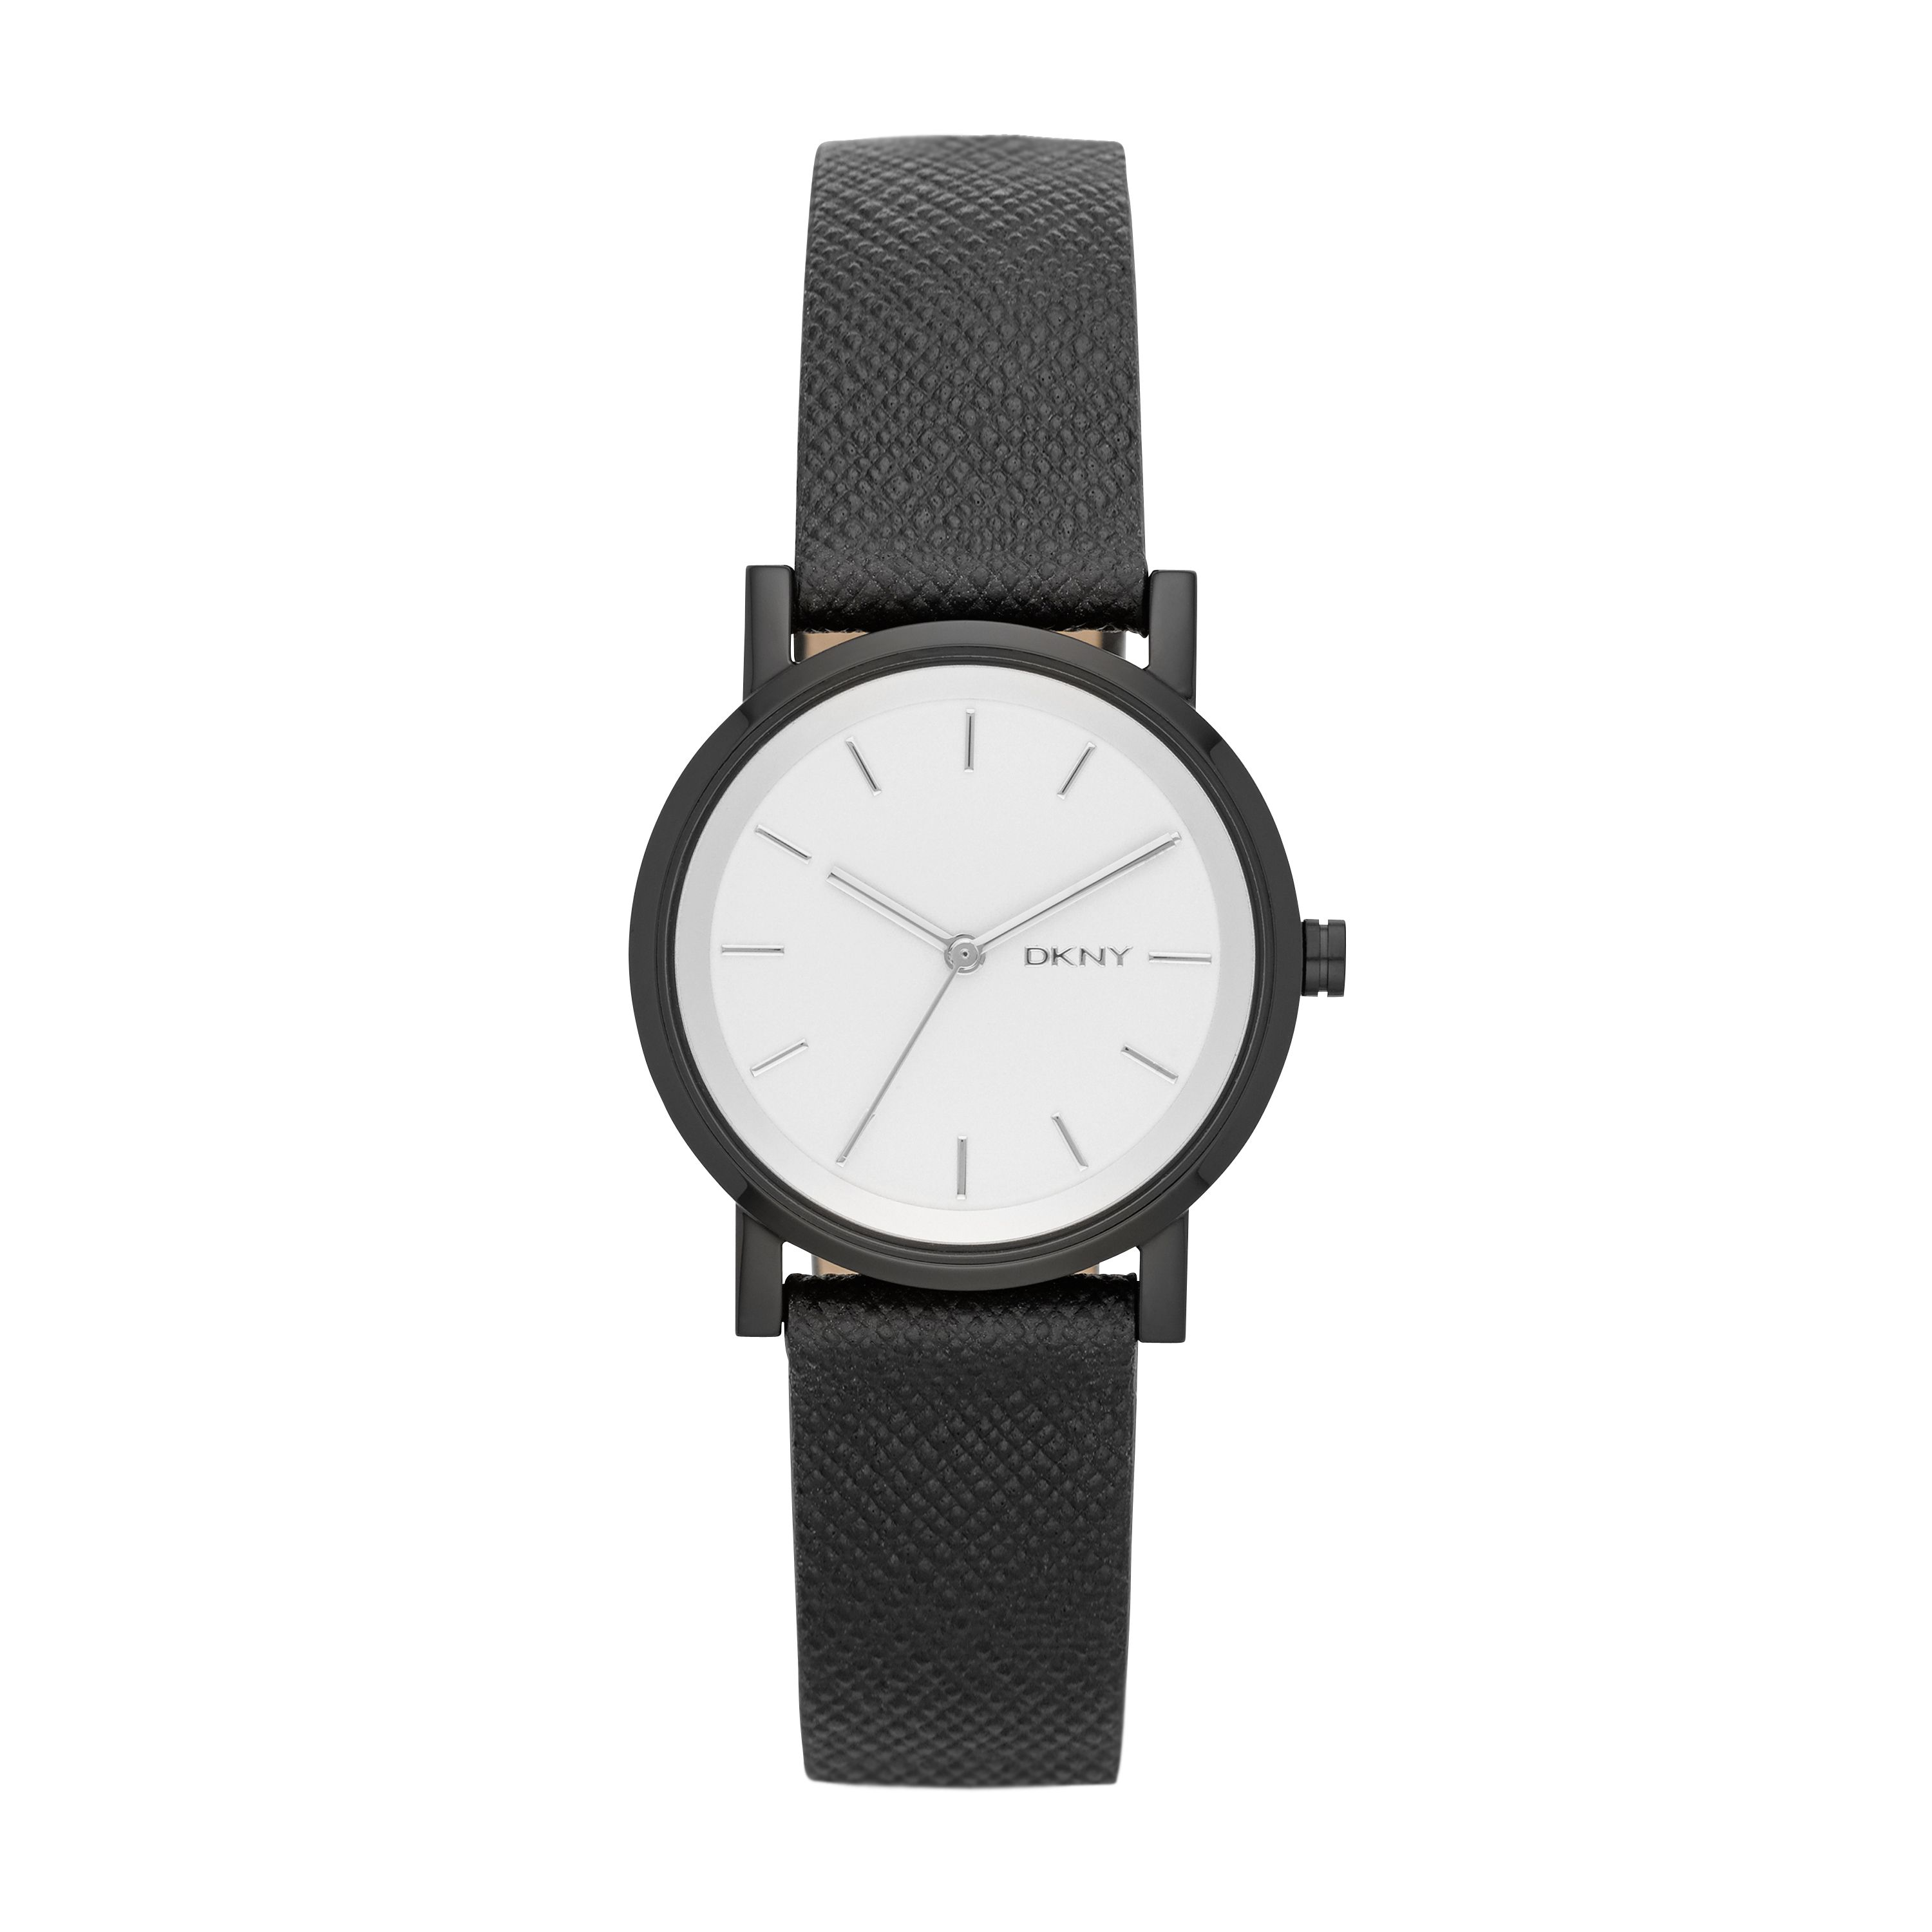 NY2186 Edge ladies black leather watch